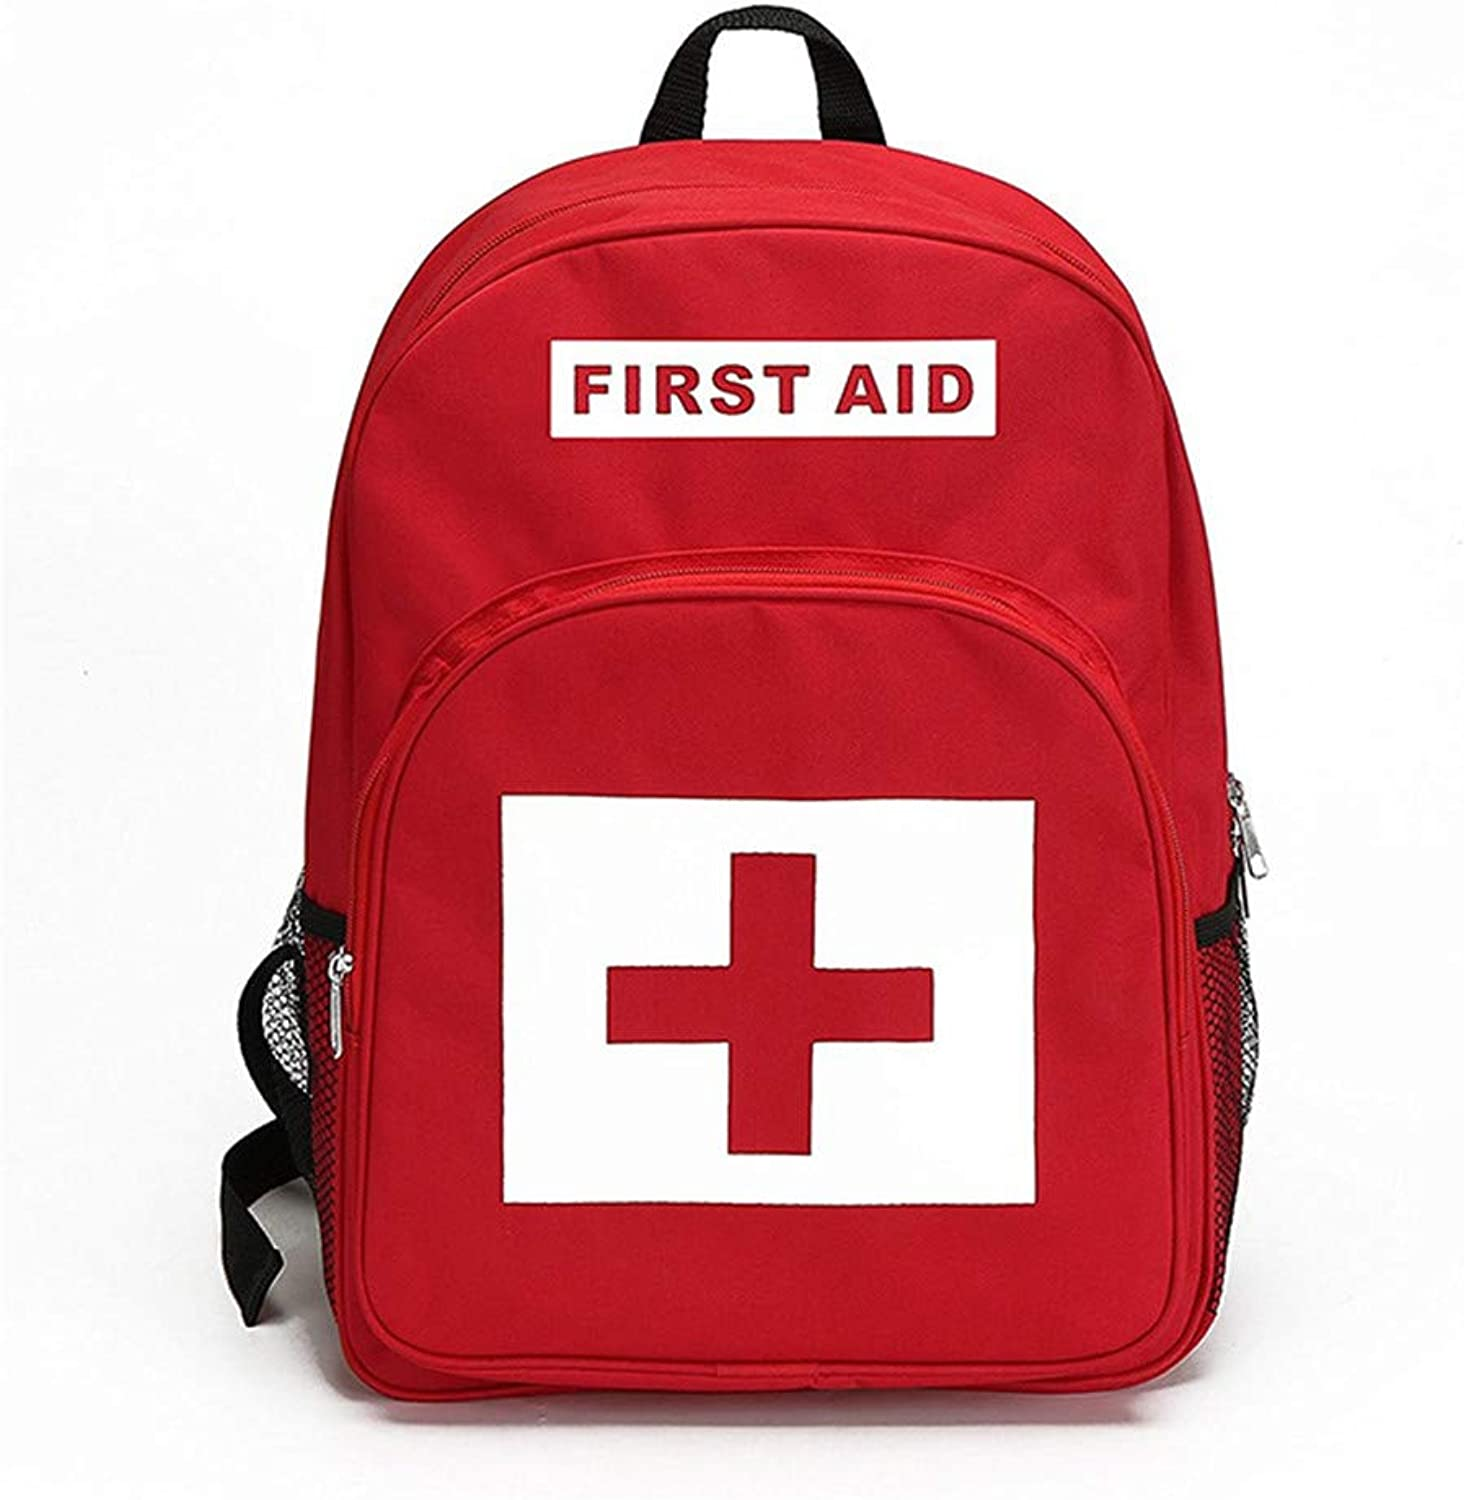 First Aid Bag, Red Backpack, Emergency Treatment,Portable for Outdoor School Travel Camping Hiking Climb Skiing